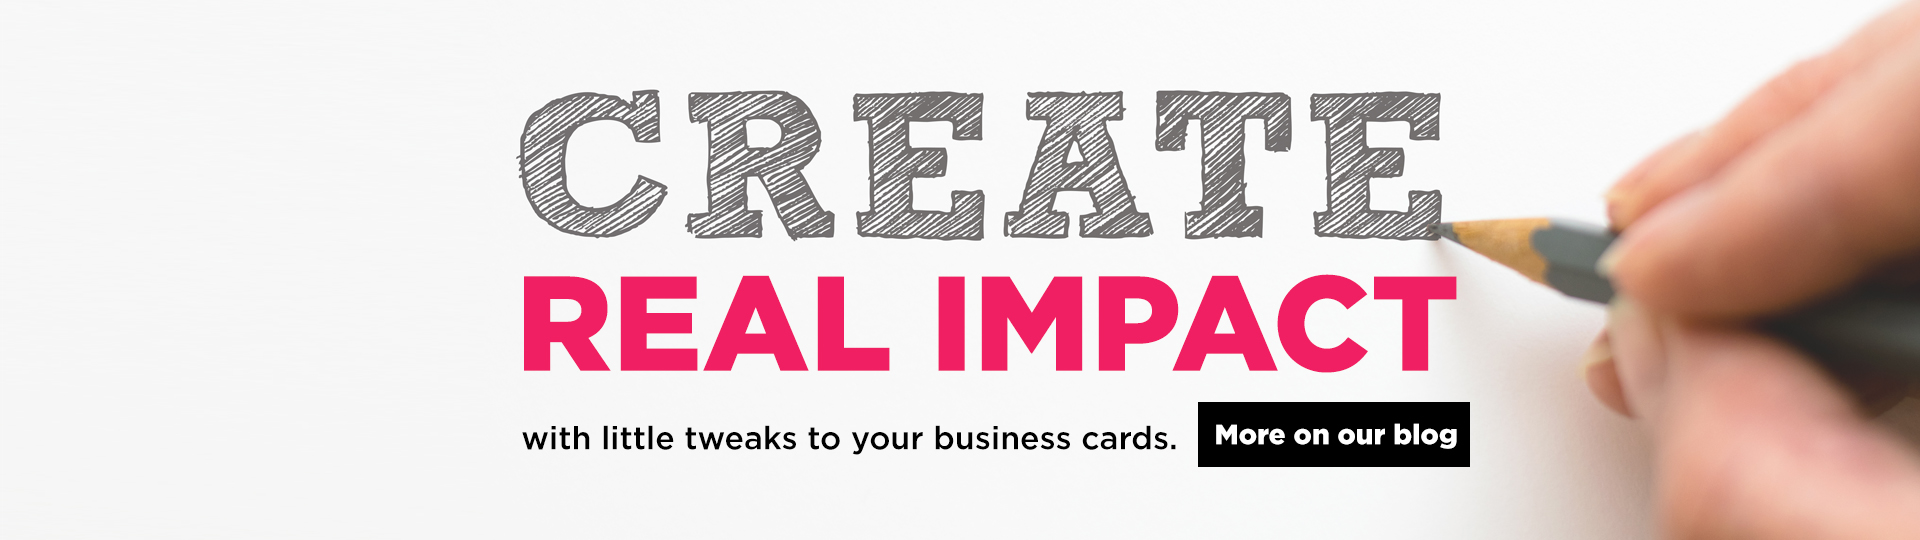 Create Real Impact - Tommy Printhub